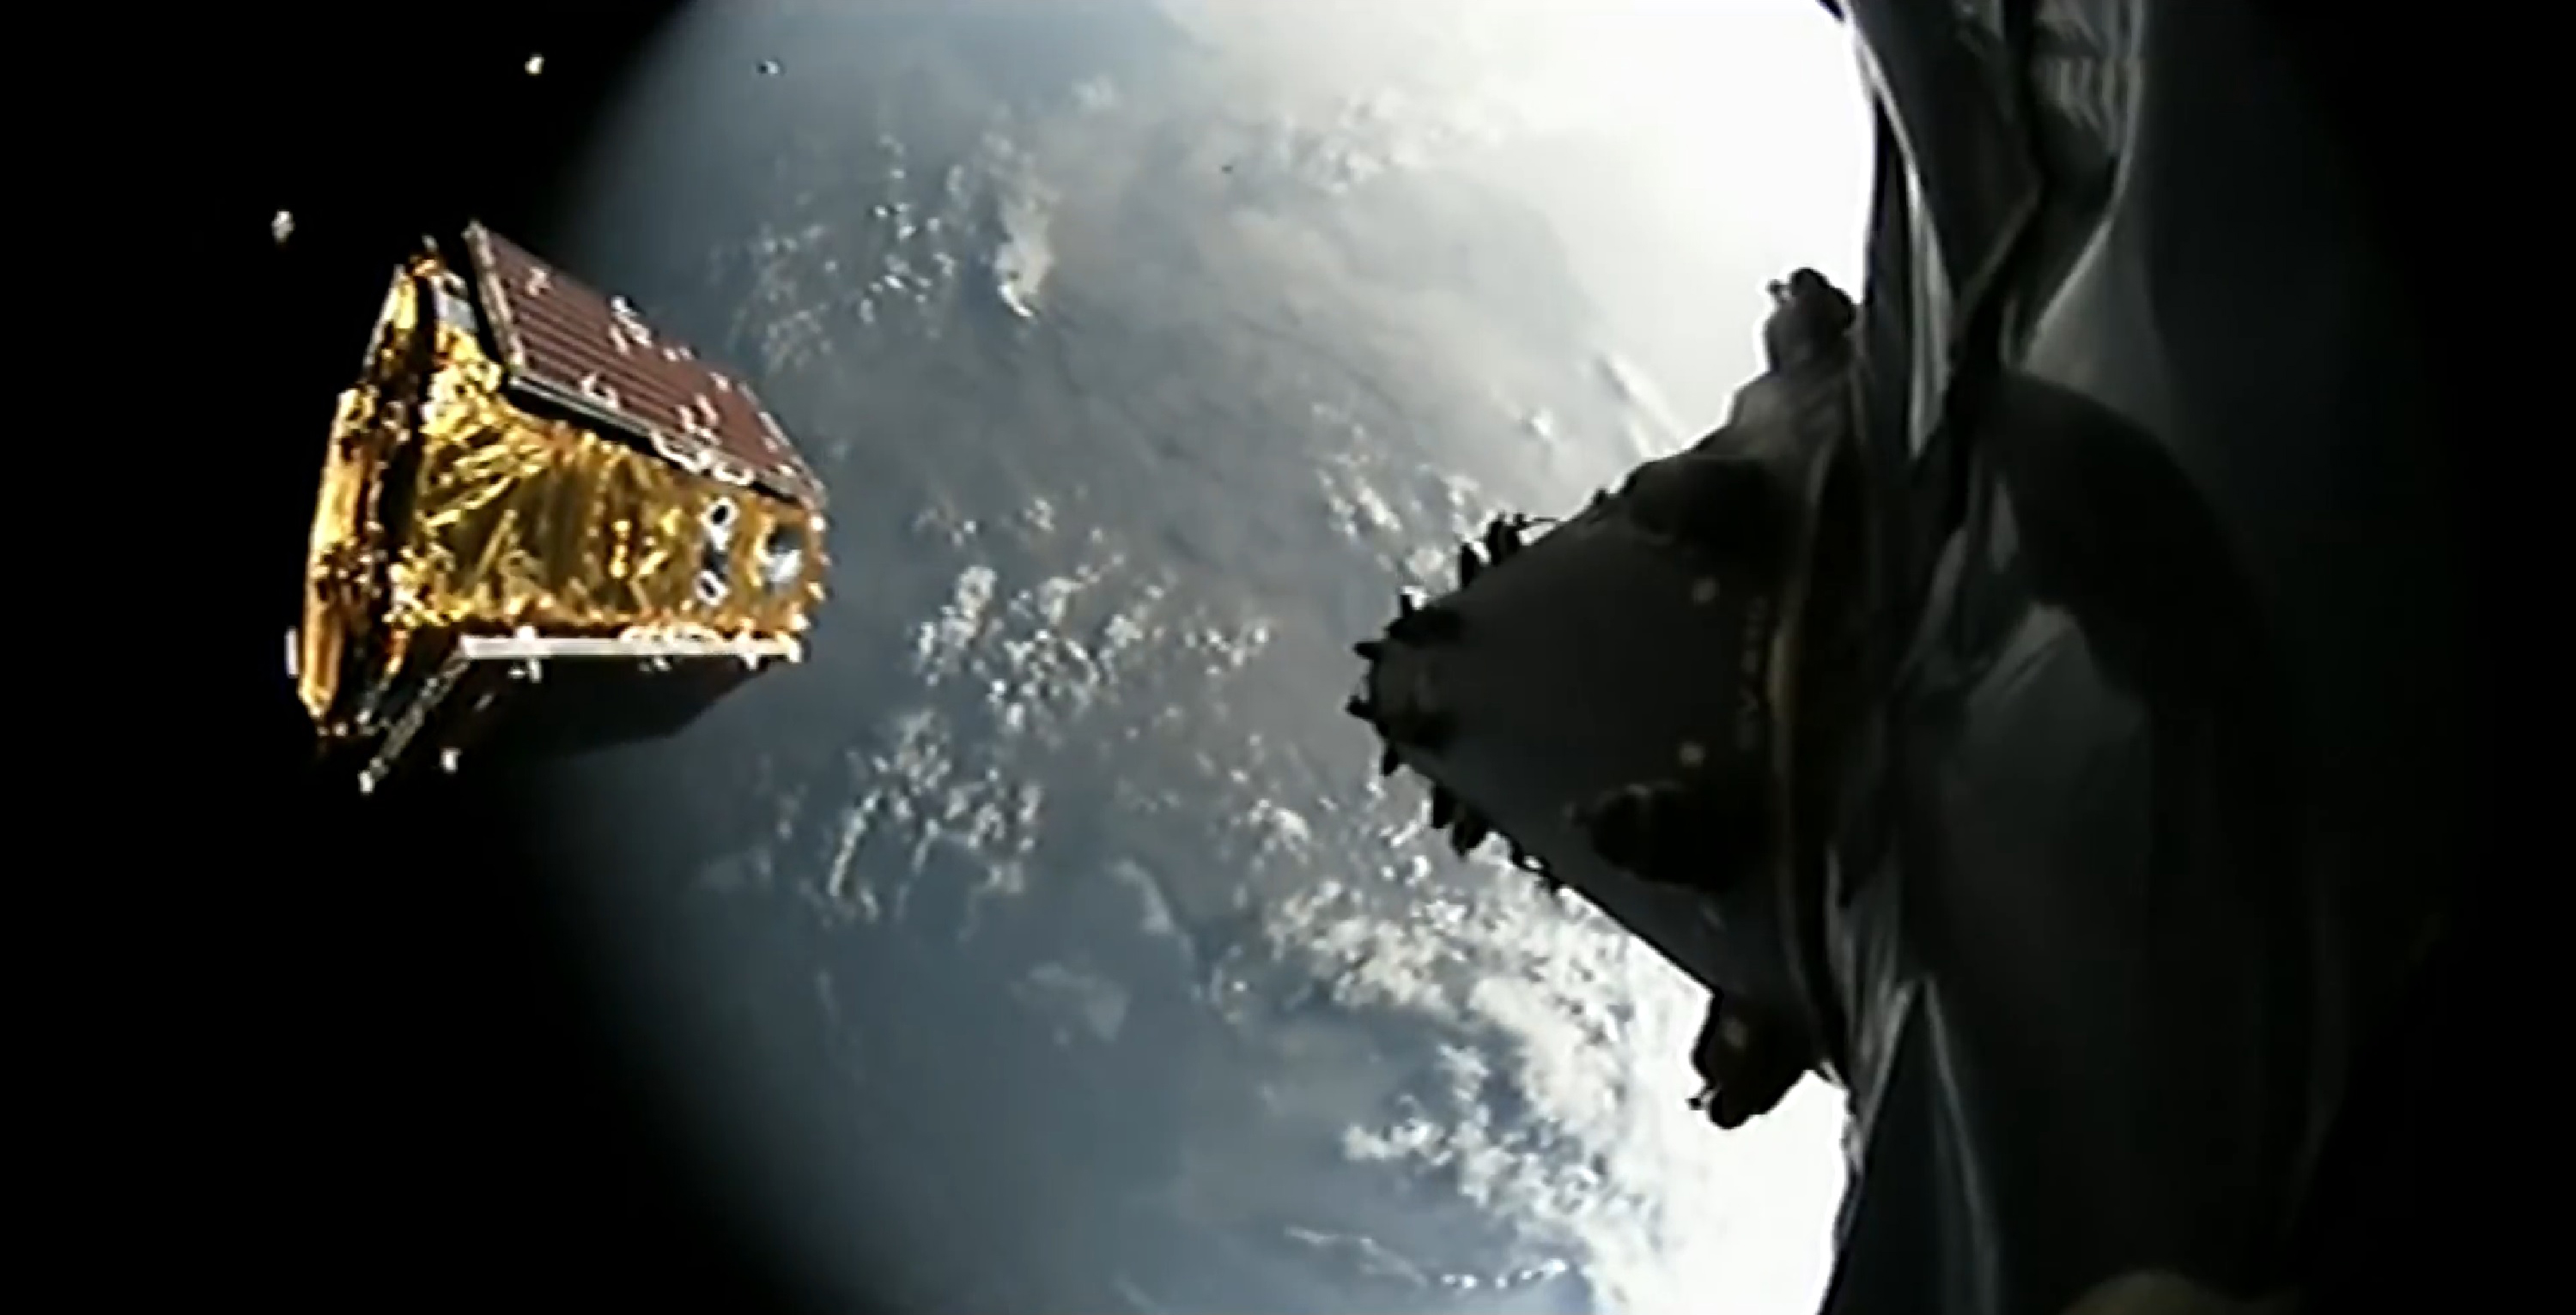 Iridium-3 deployments (SpaceX)